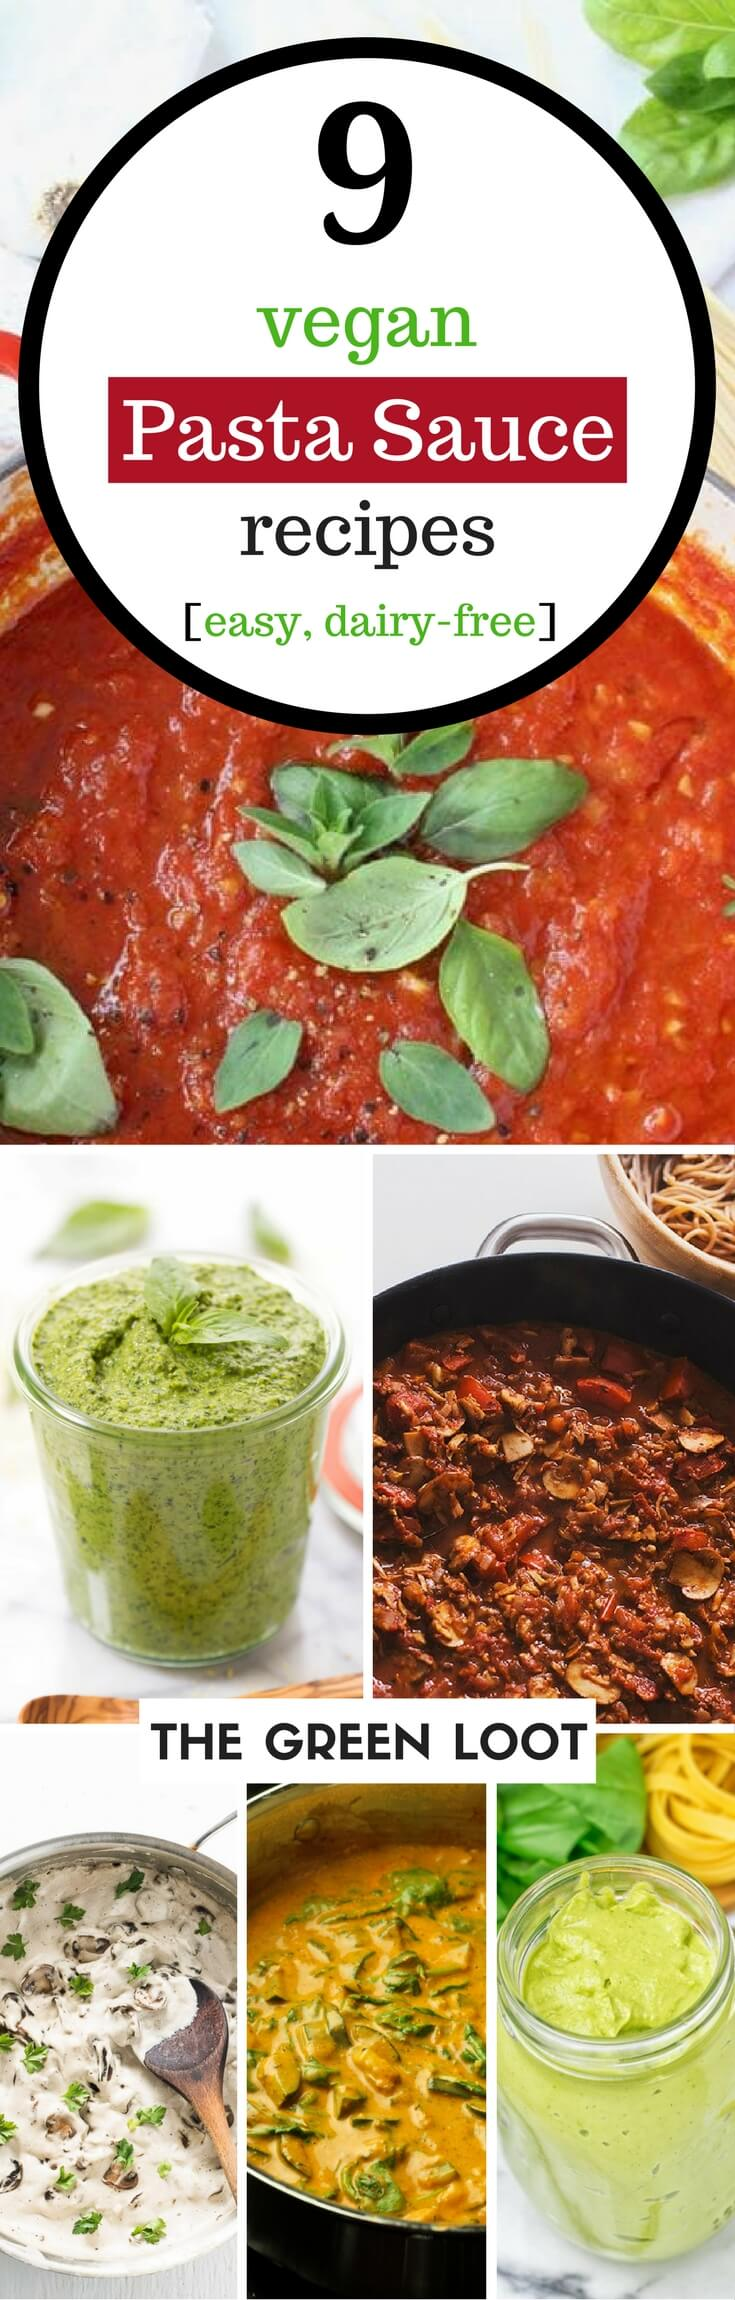 Vegan pasta sauce recipes that are creamy, plant-based, dairy-free and easy to make. Make these sauces with tomatoes or veggies for a healthy pasta.   The Green Loot #vegan #dairyfree